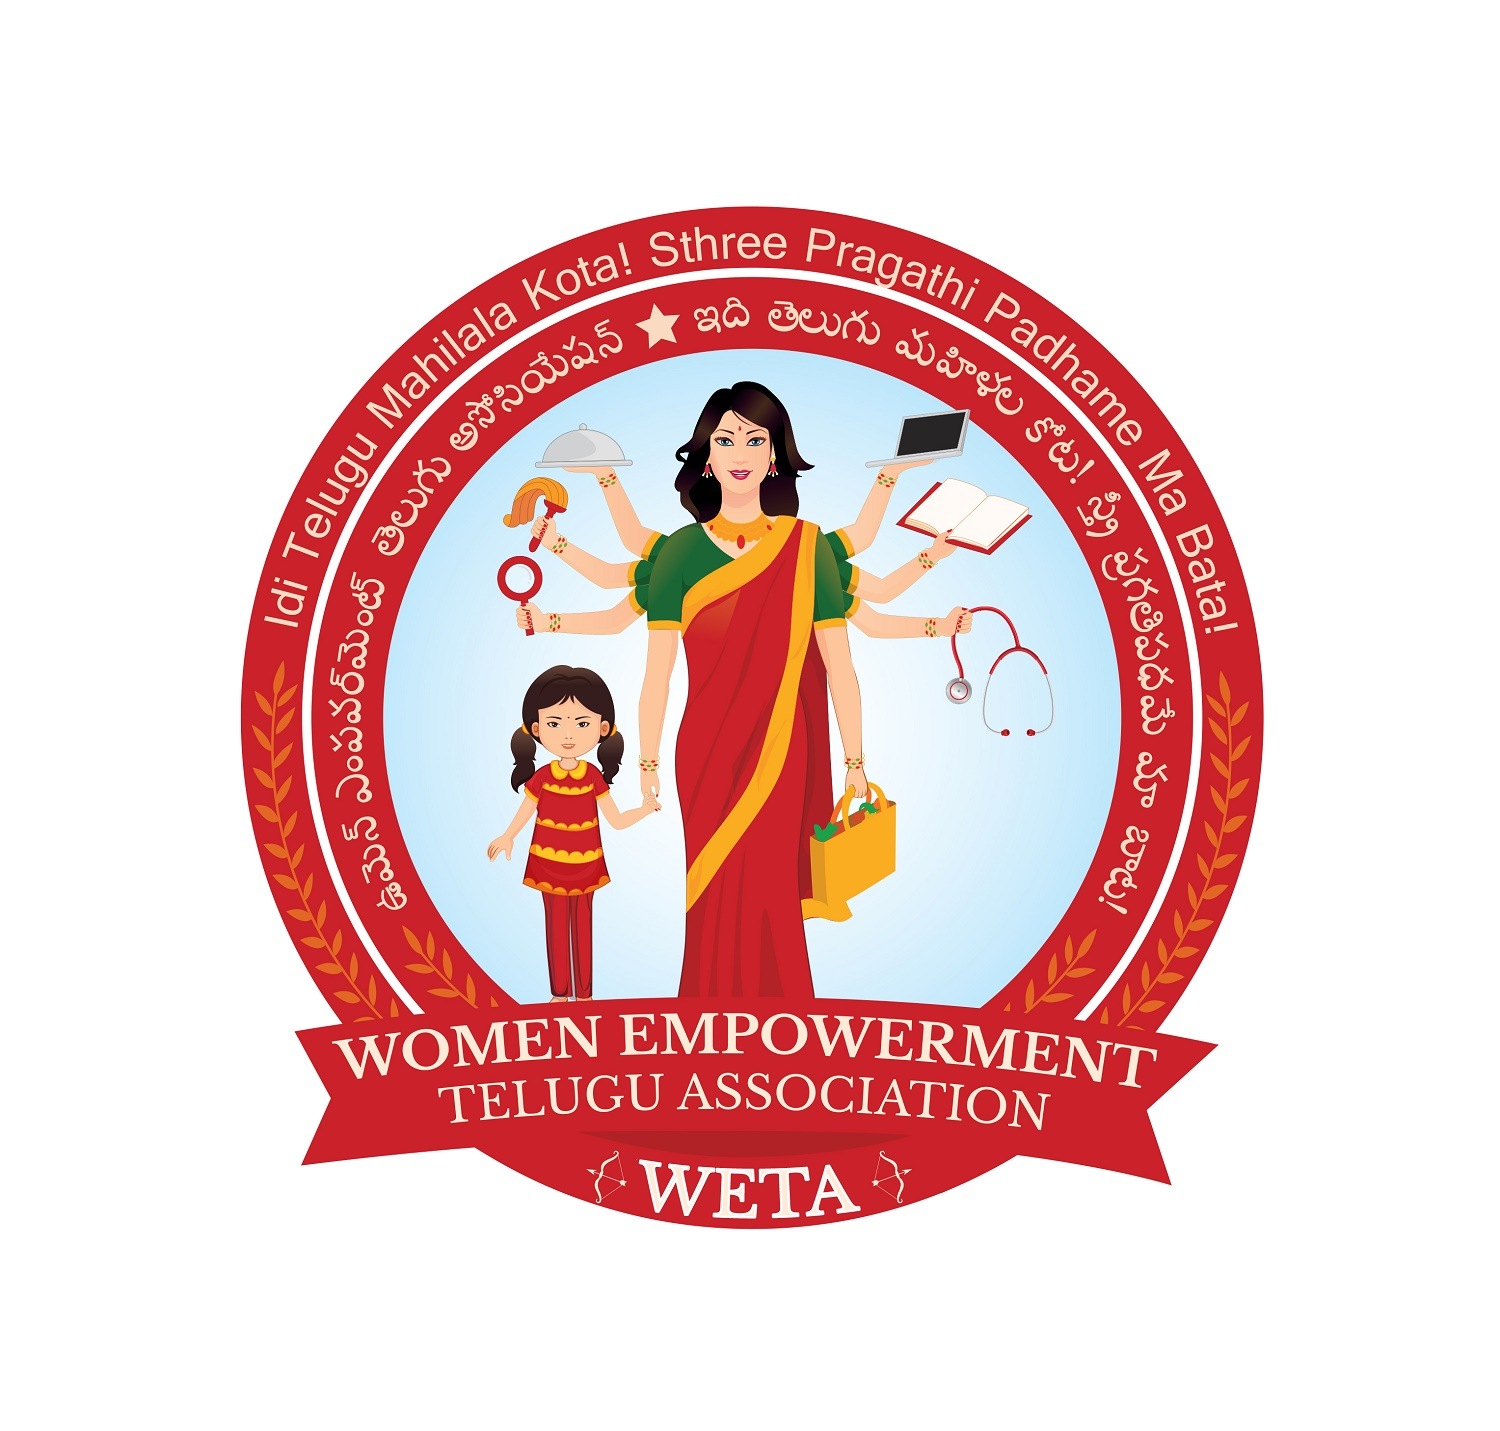 WOMEN EMPOWERMENT TELUGU ASSOCIATION ( WETA)